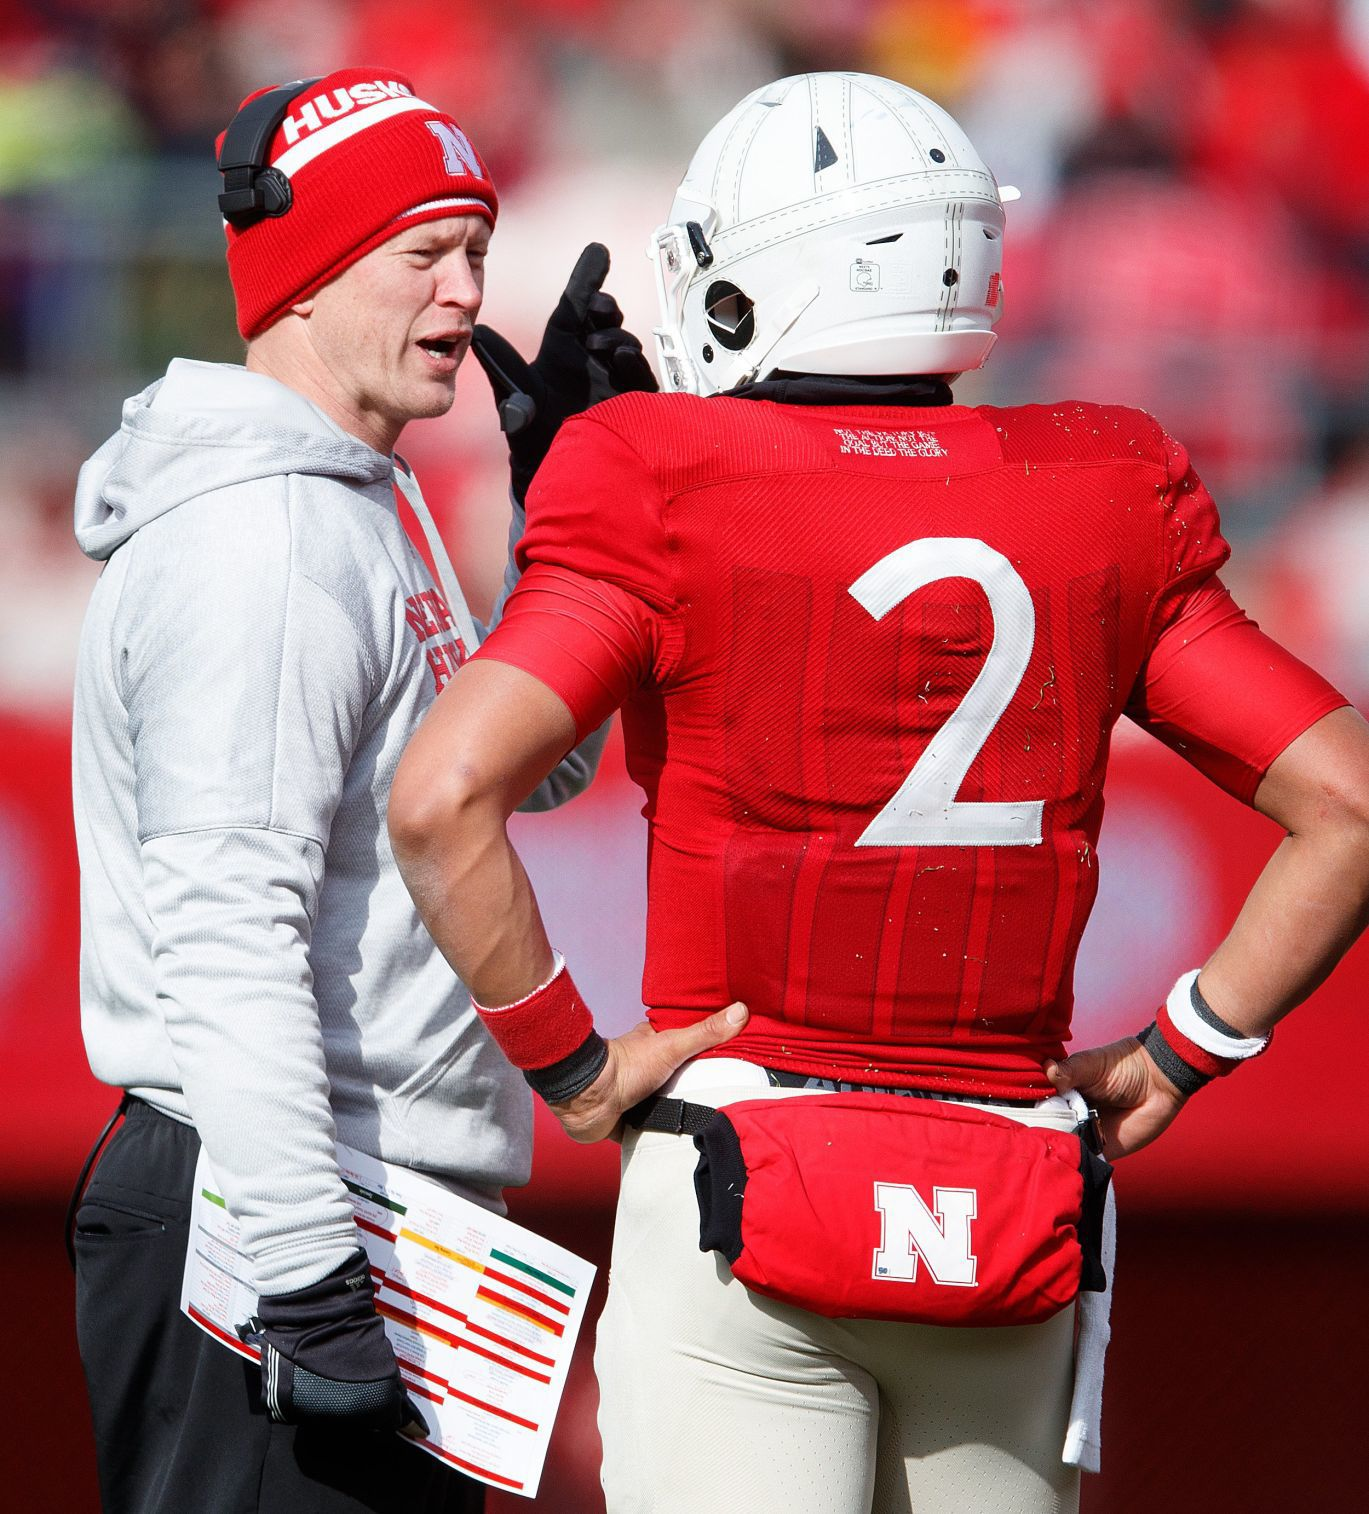 McKewon: Magazines say Nebraska will turn the page with Scott Frost, Adrian Martinez